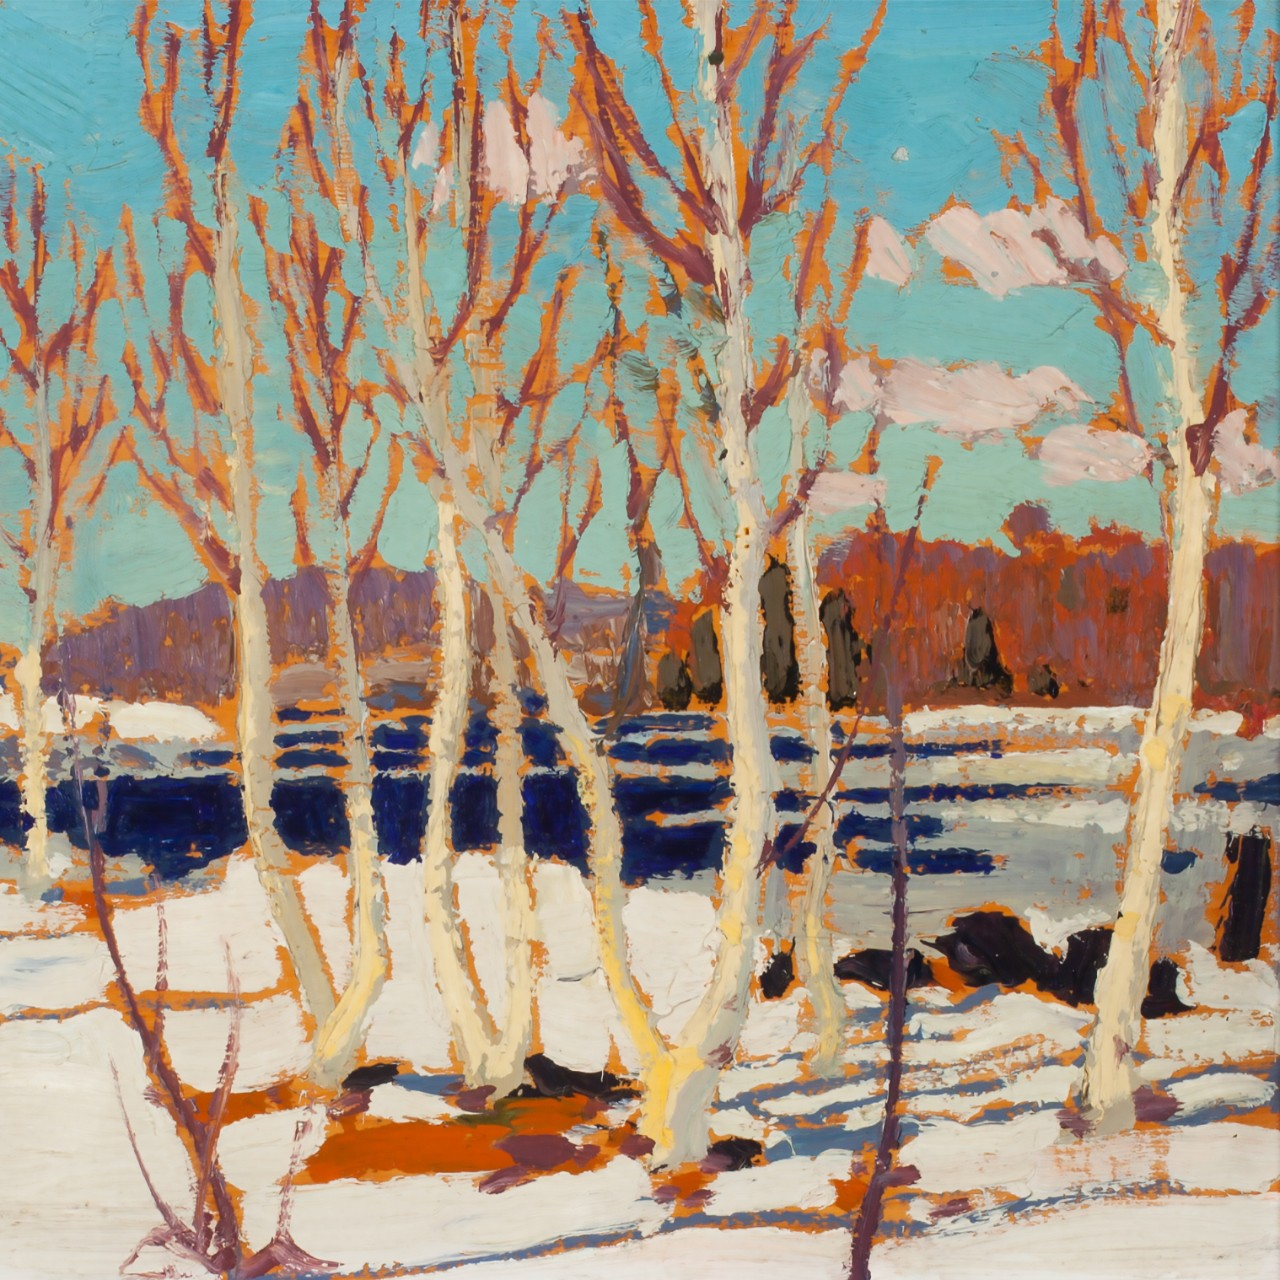 "Tom Thomson (1877-1917). ""April in Algonquin Park"" (detail), 1917. Oil on wood panel, 21.5 x 26.6 cm. Collection of the Tom Thomson Art Gallery, Owen Sound Ontario, gift of George Thomson, brother of Tom Thomson, 1967. Photo: Michelle Wilson."